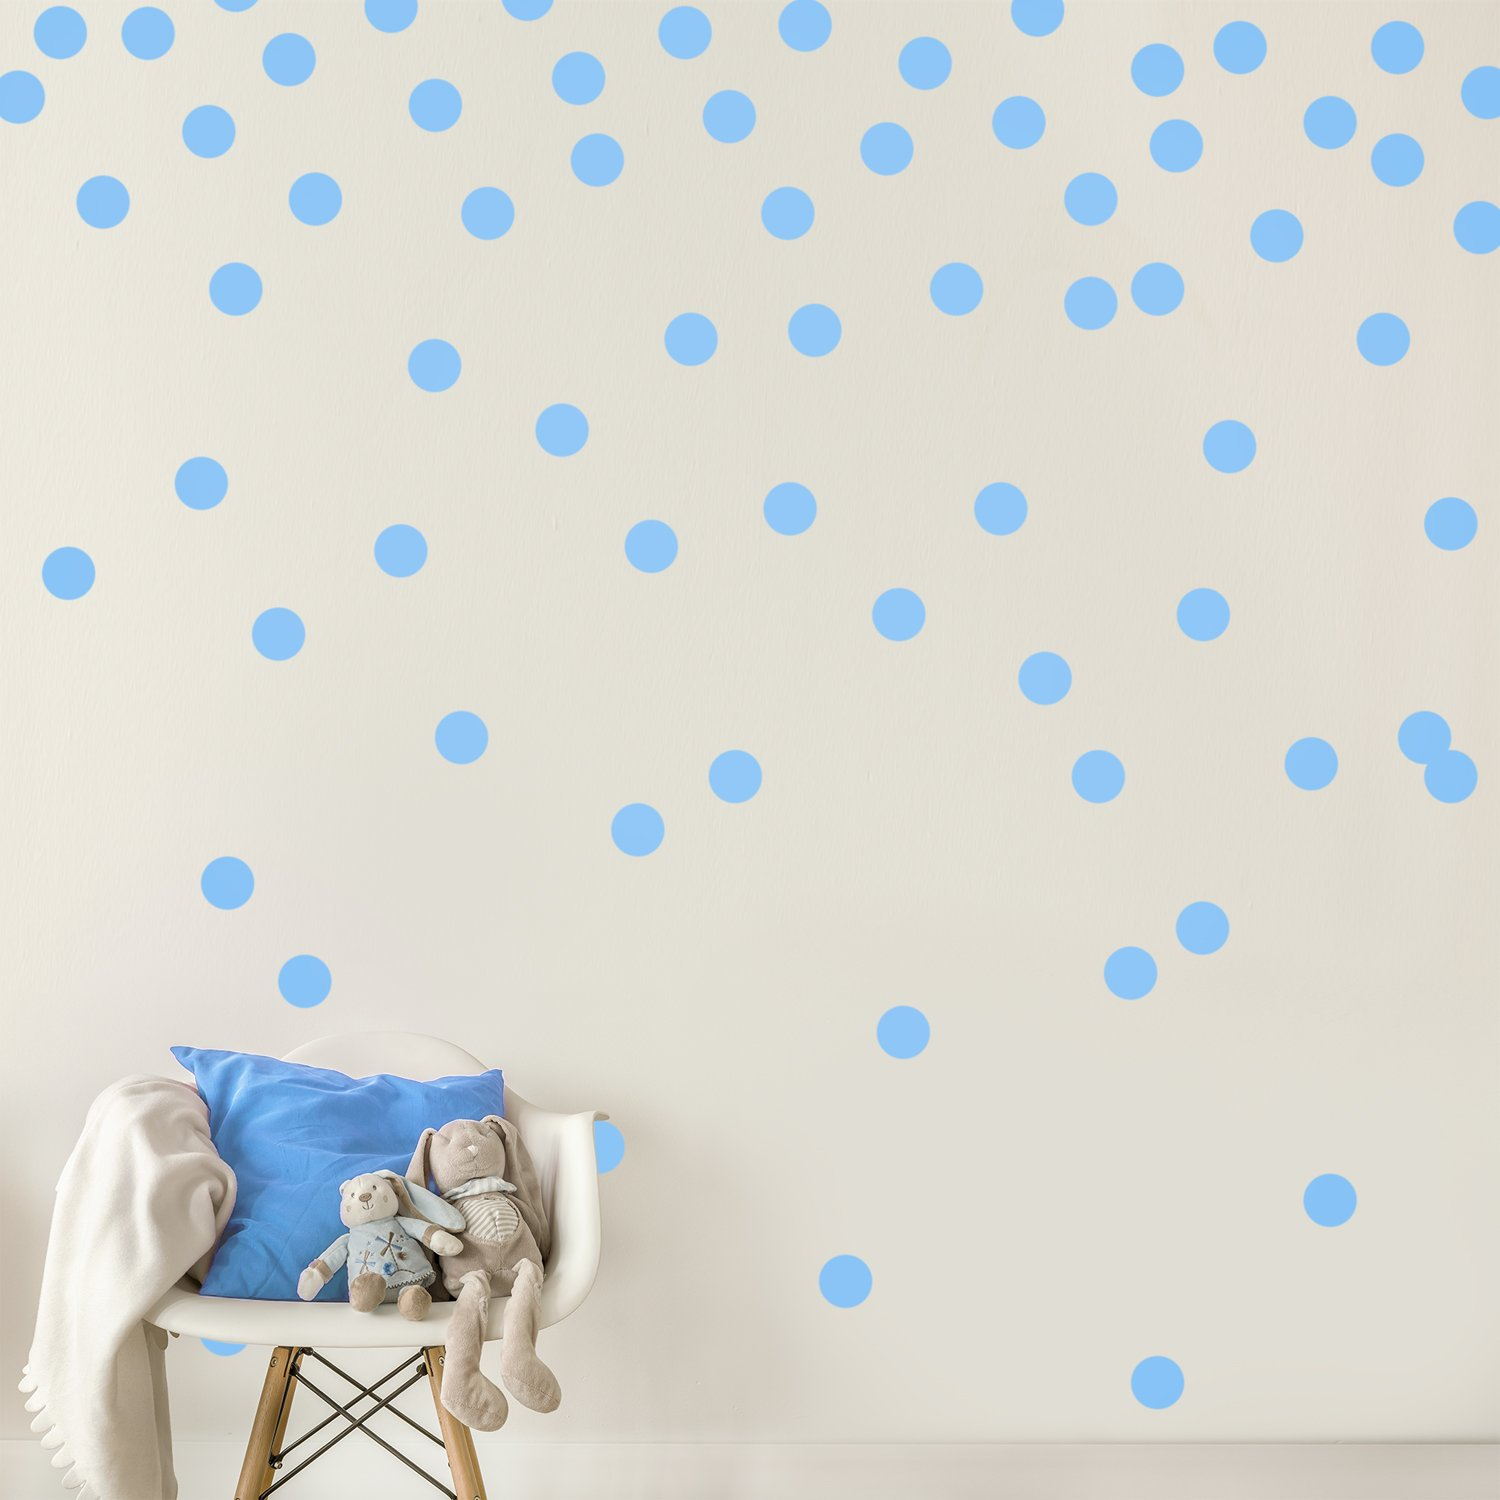 amazon com silver wall decal dots 200 decals easy peel amazon com silver wall decal dots 200 decals easy peel stick safe on walls paint removable metallic vinyl polka dot decor round circle art